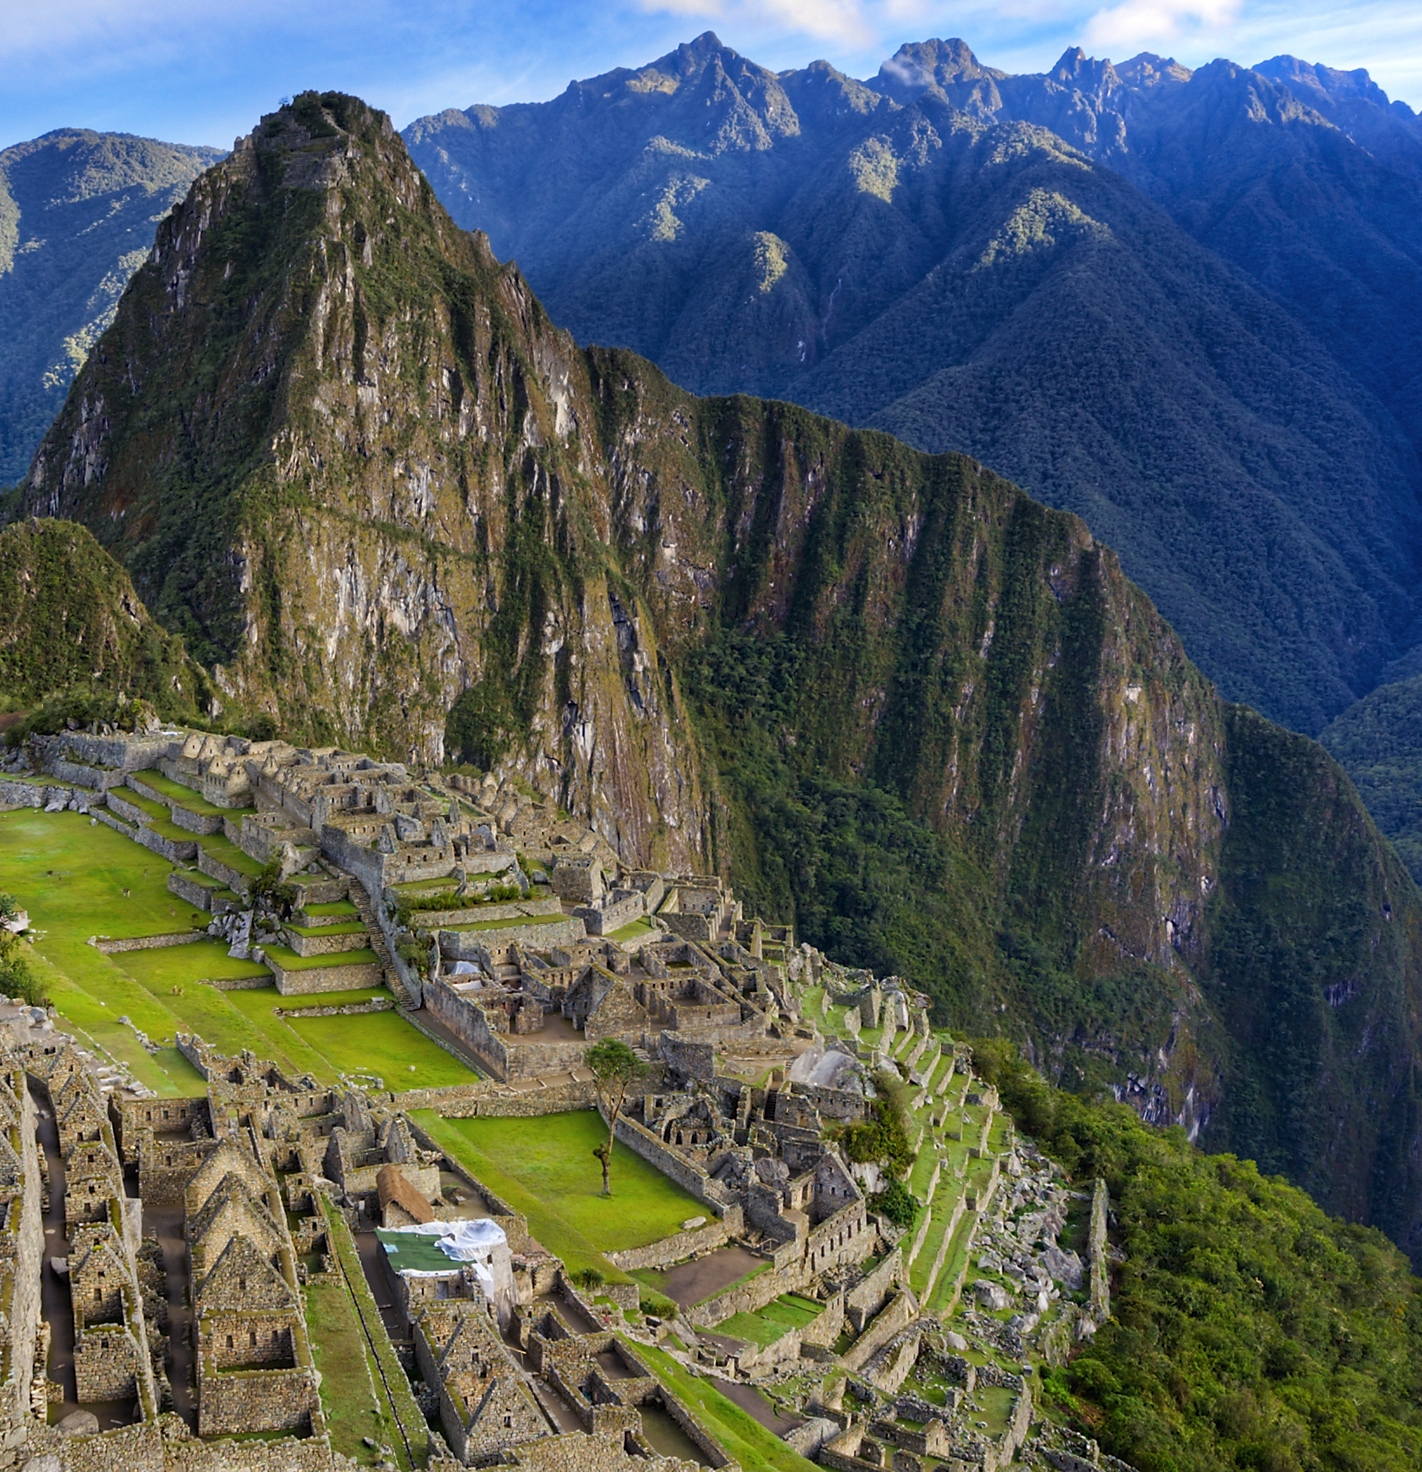 Aerial view of Machu Picchu and surrounding mountain peaks